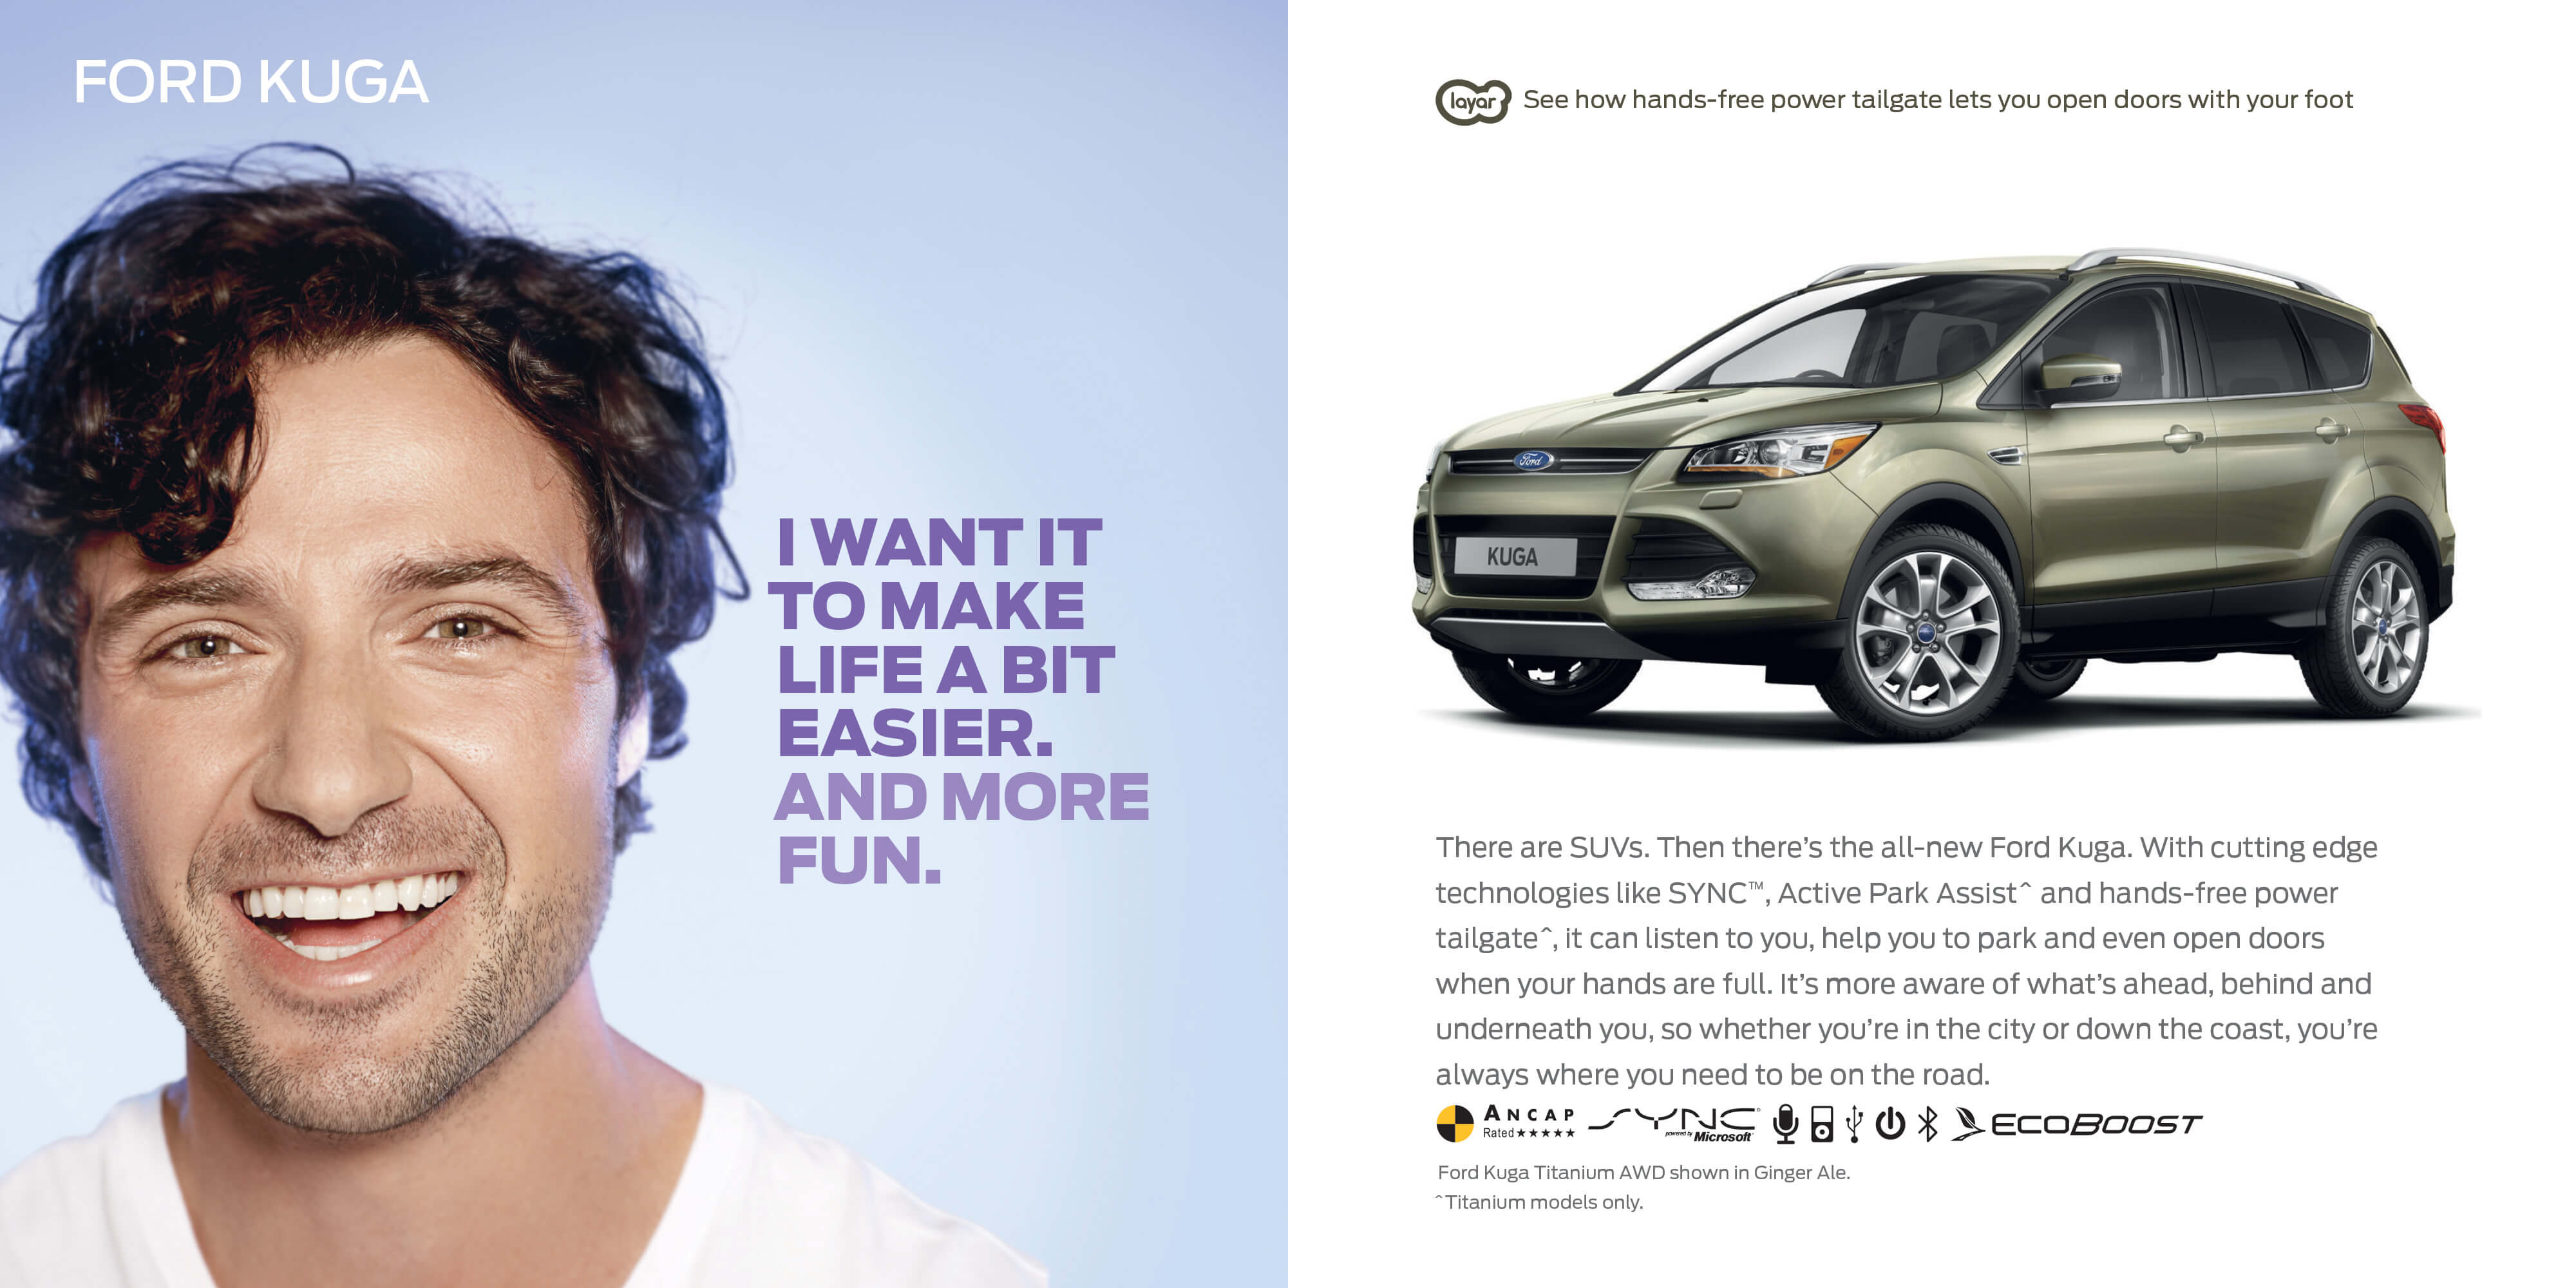 Ford: Augmented Reality Retention Book is part of a customer CRM repurchase program and used Layar AR technology to close the gap between offline concept and online content. I was creative director on this project.